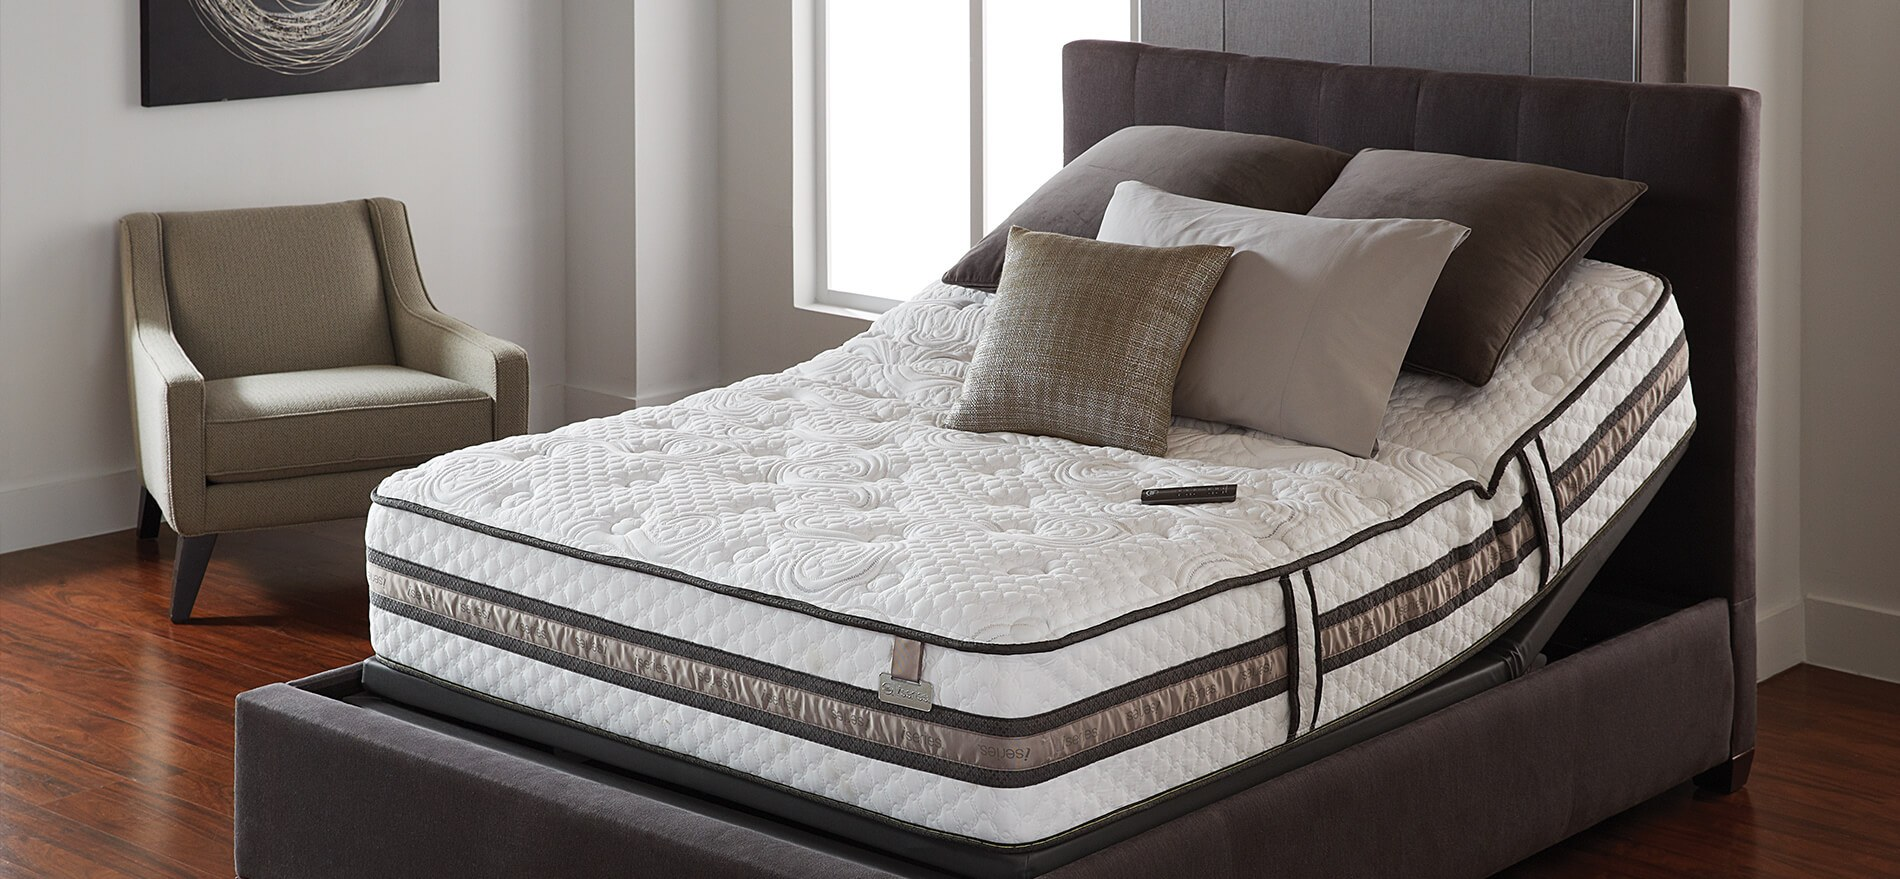 How To Find Best Deals Quality Mattress